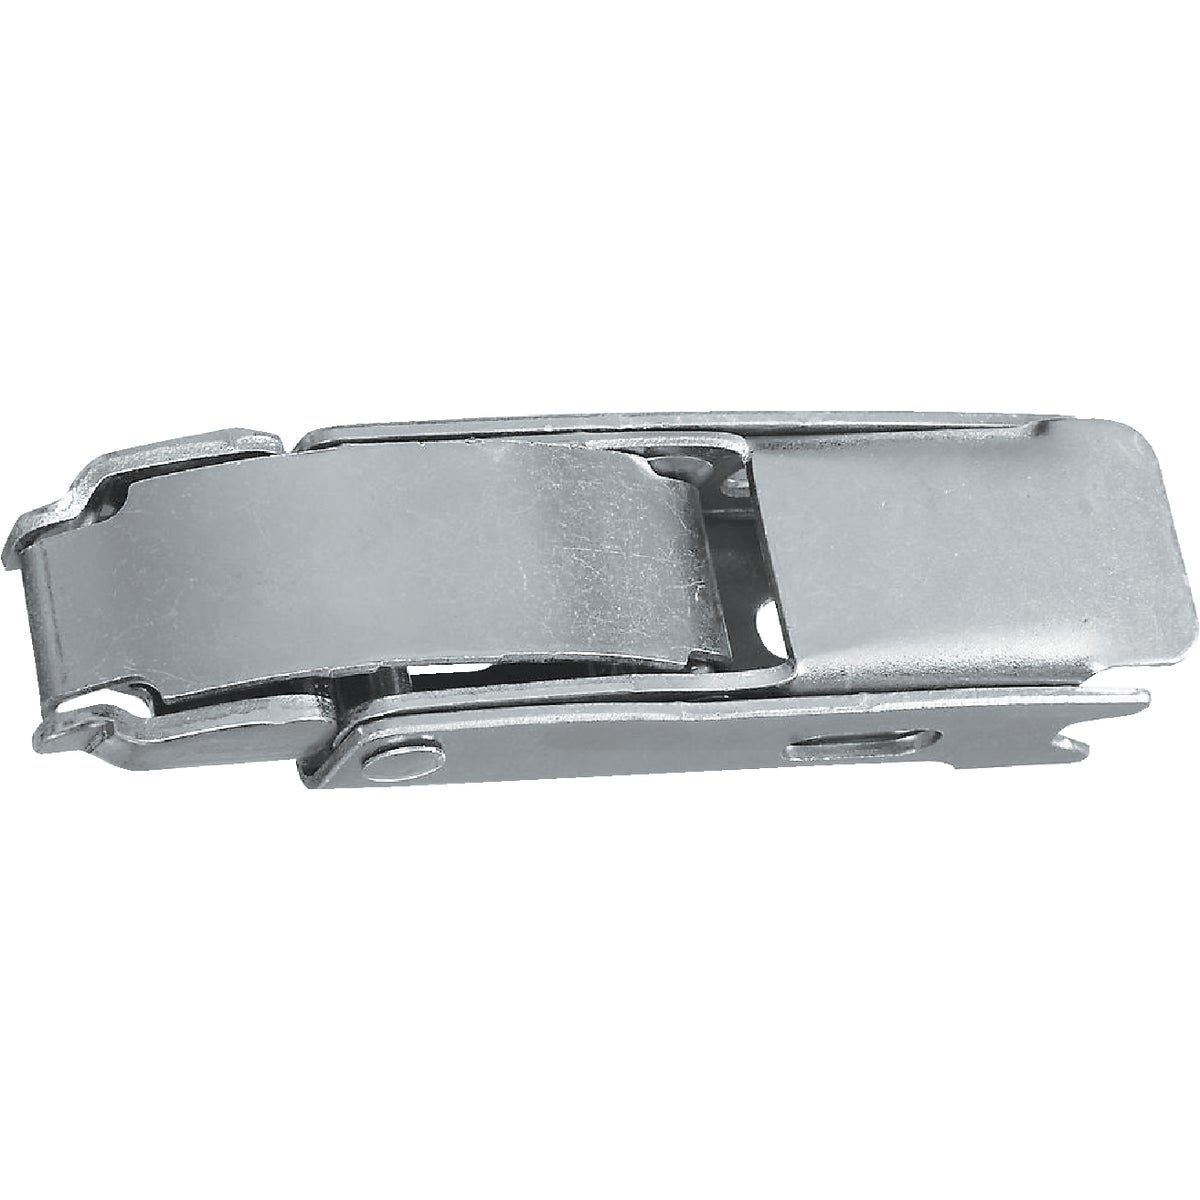 "2-3/4"" ZINC DRAW HASP - N208512 by National Mfg Co"